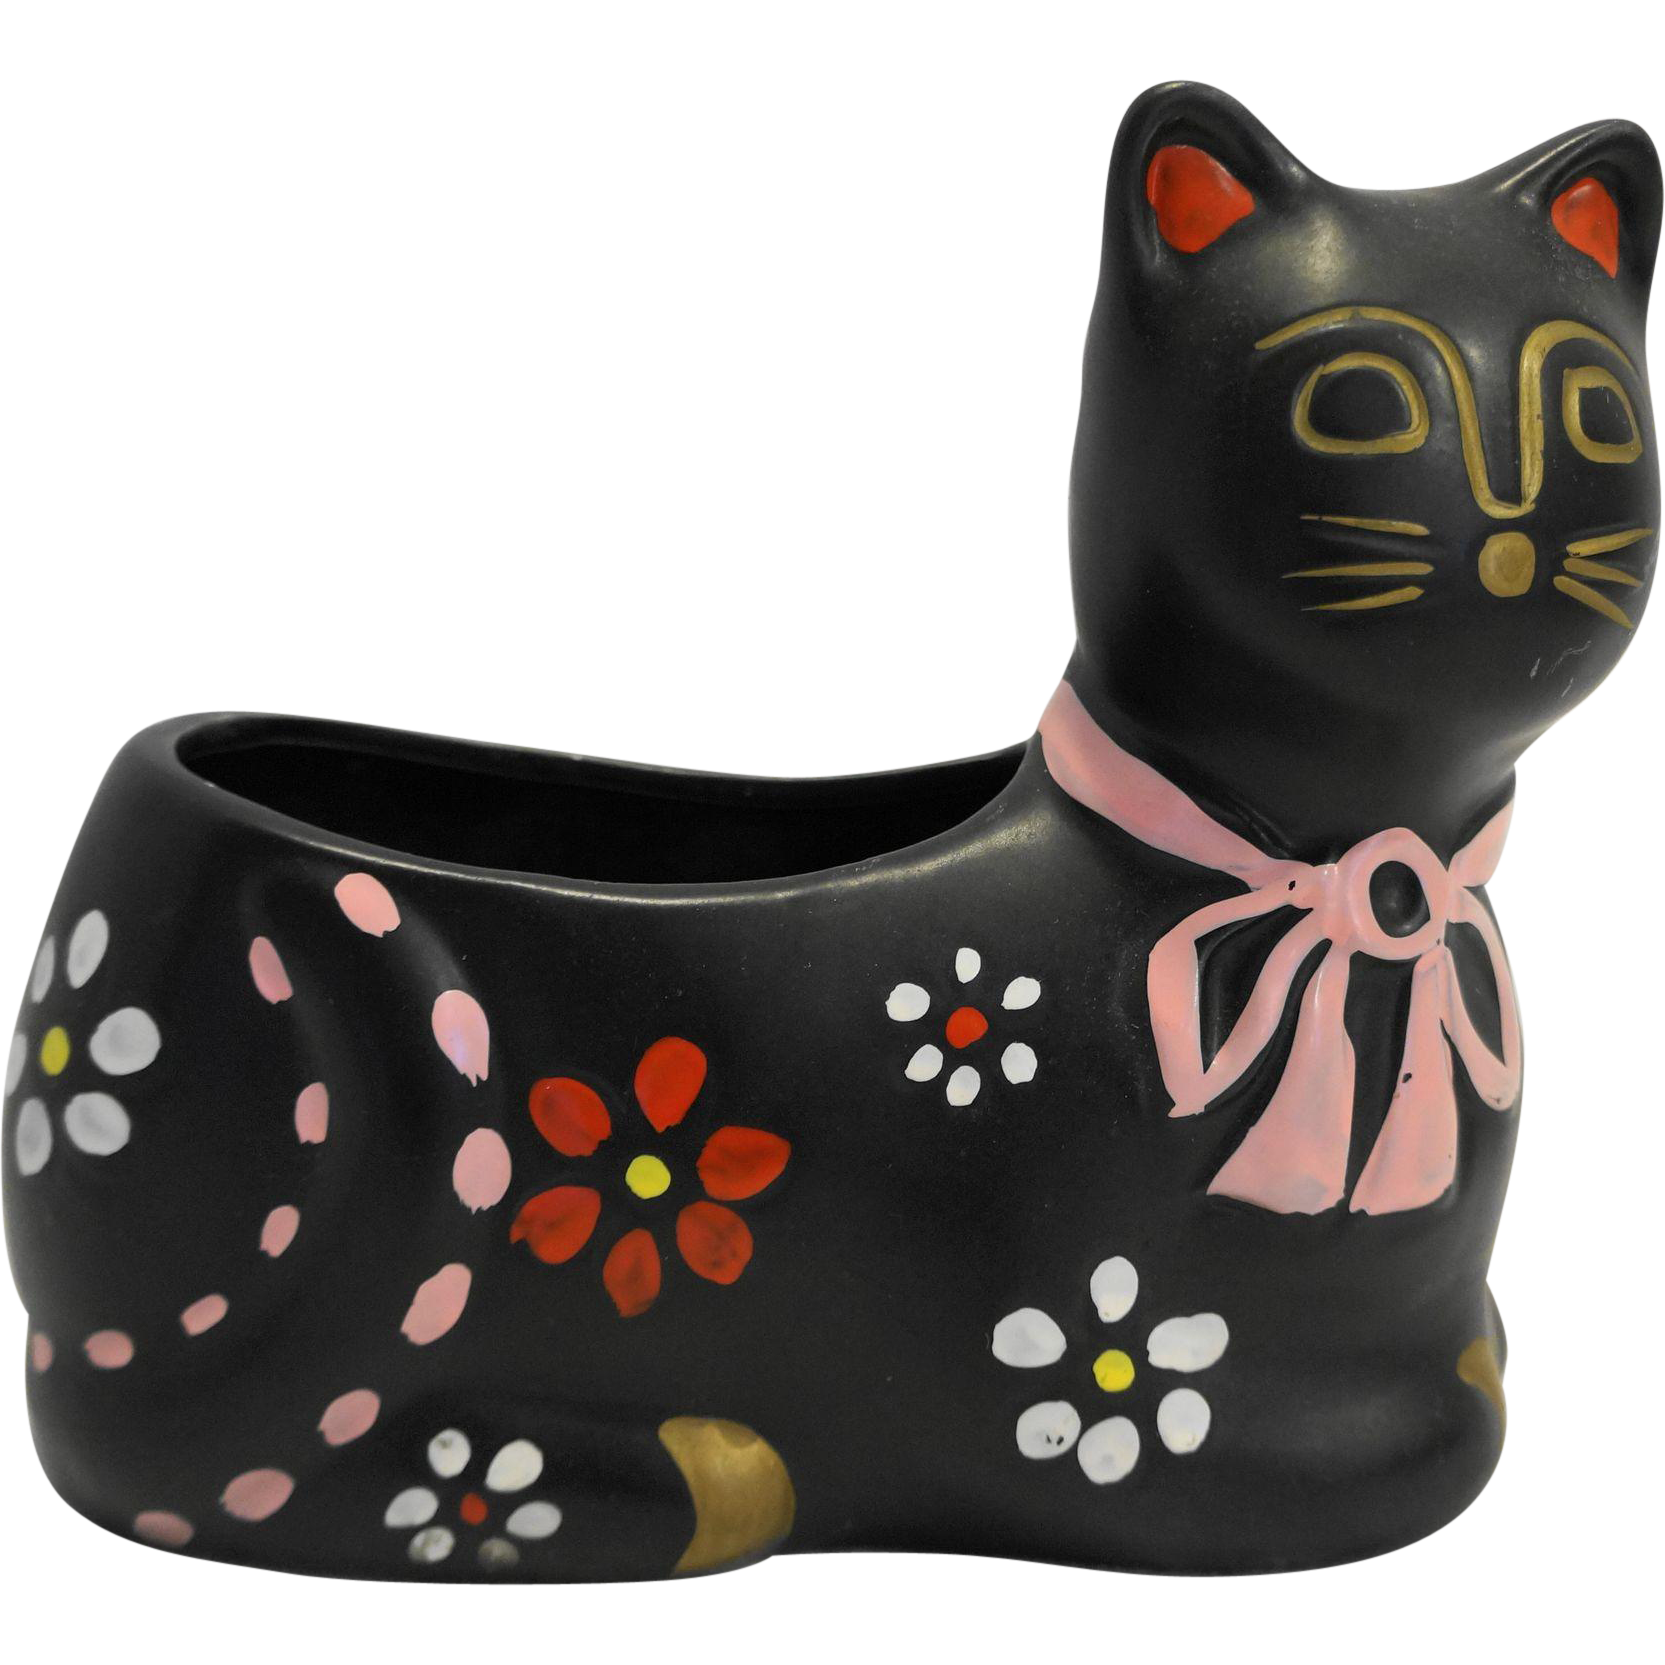 National Potteries Company Napco Black Hand Painted Cat Planter Japan